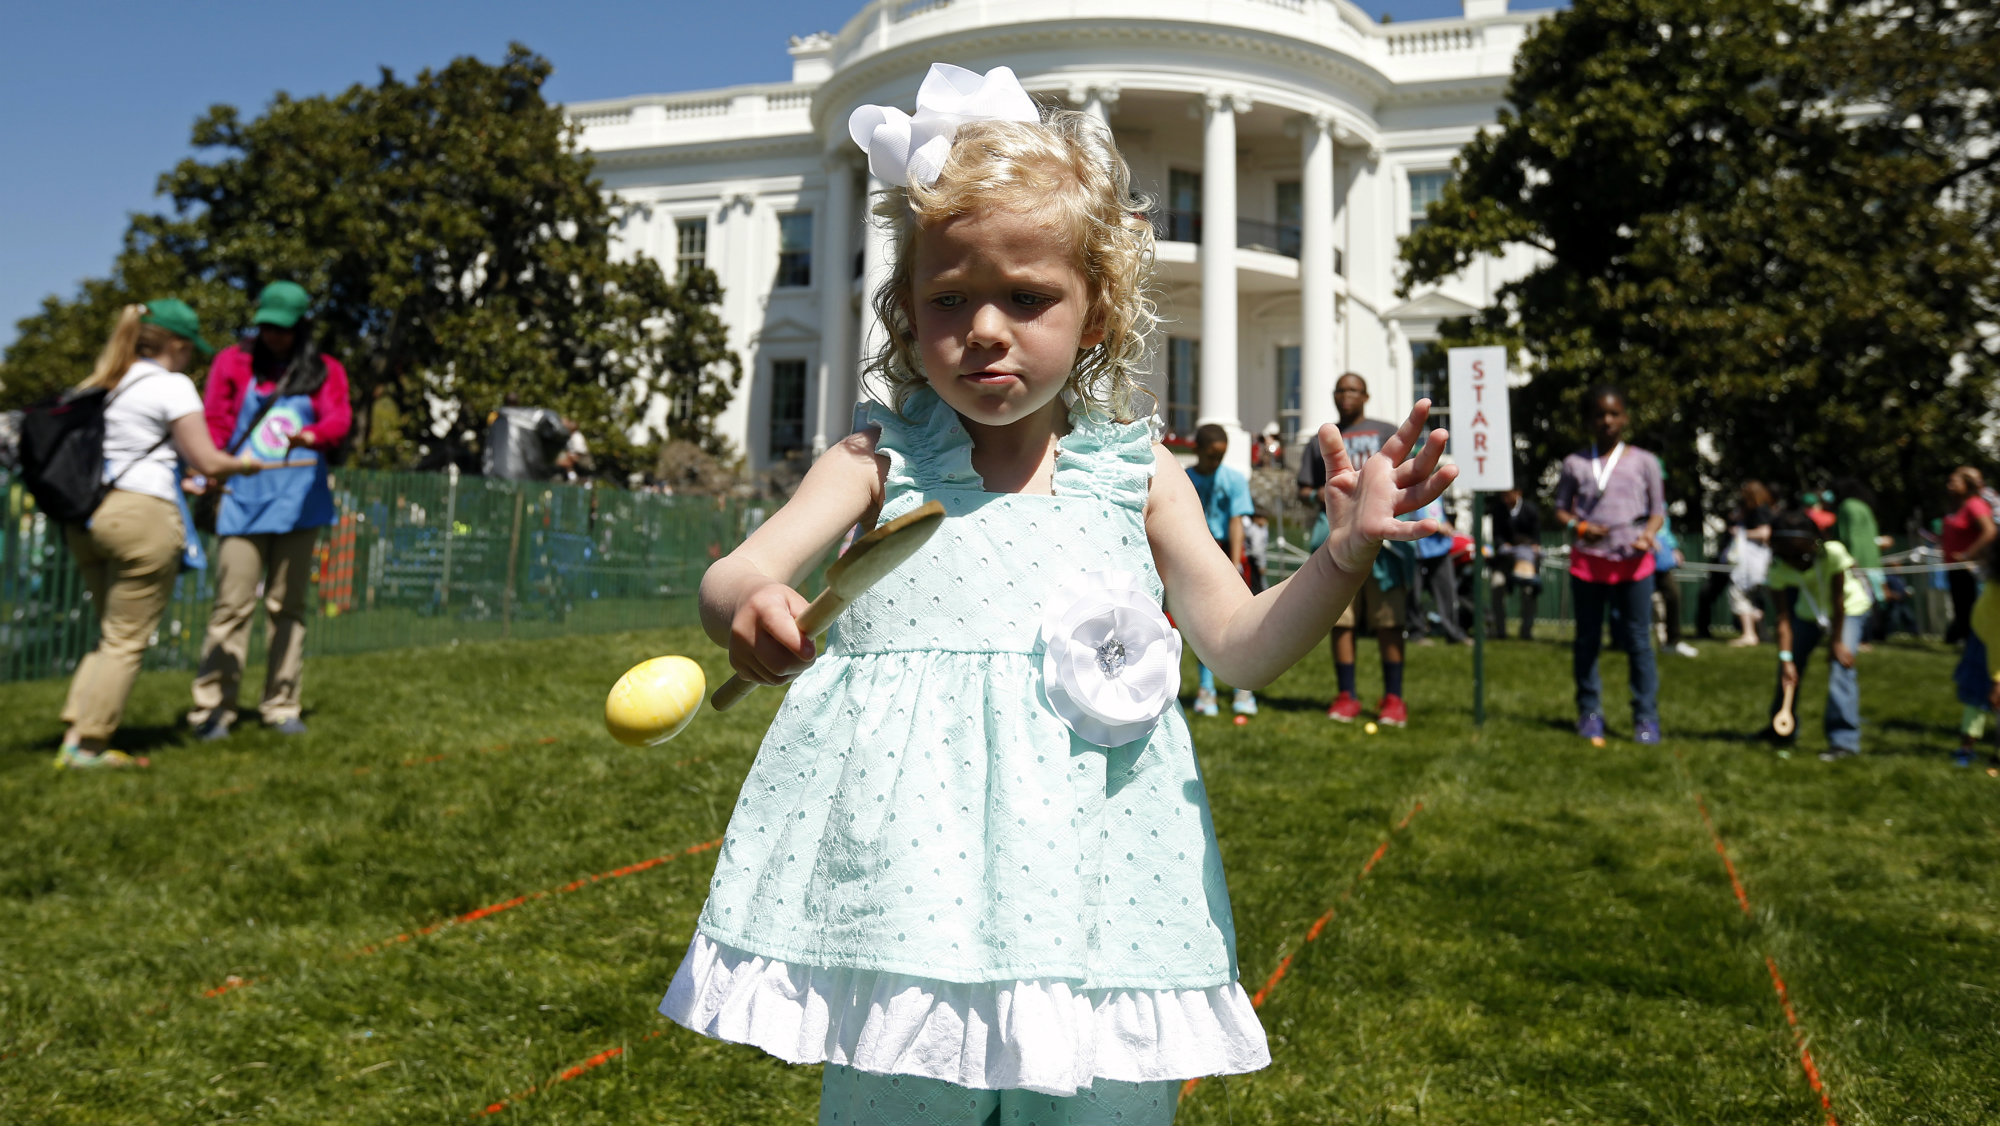 Ella Jane Michael, 4, from Fishersville, VA, takes part in the 136th annual Easter Egg Roll on the South...